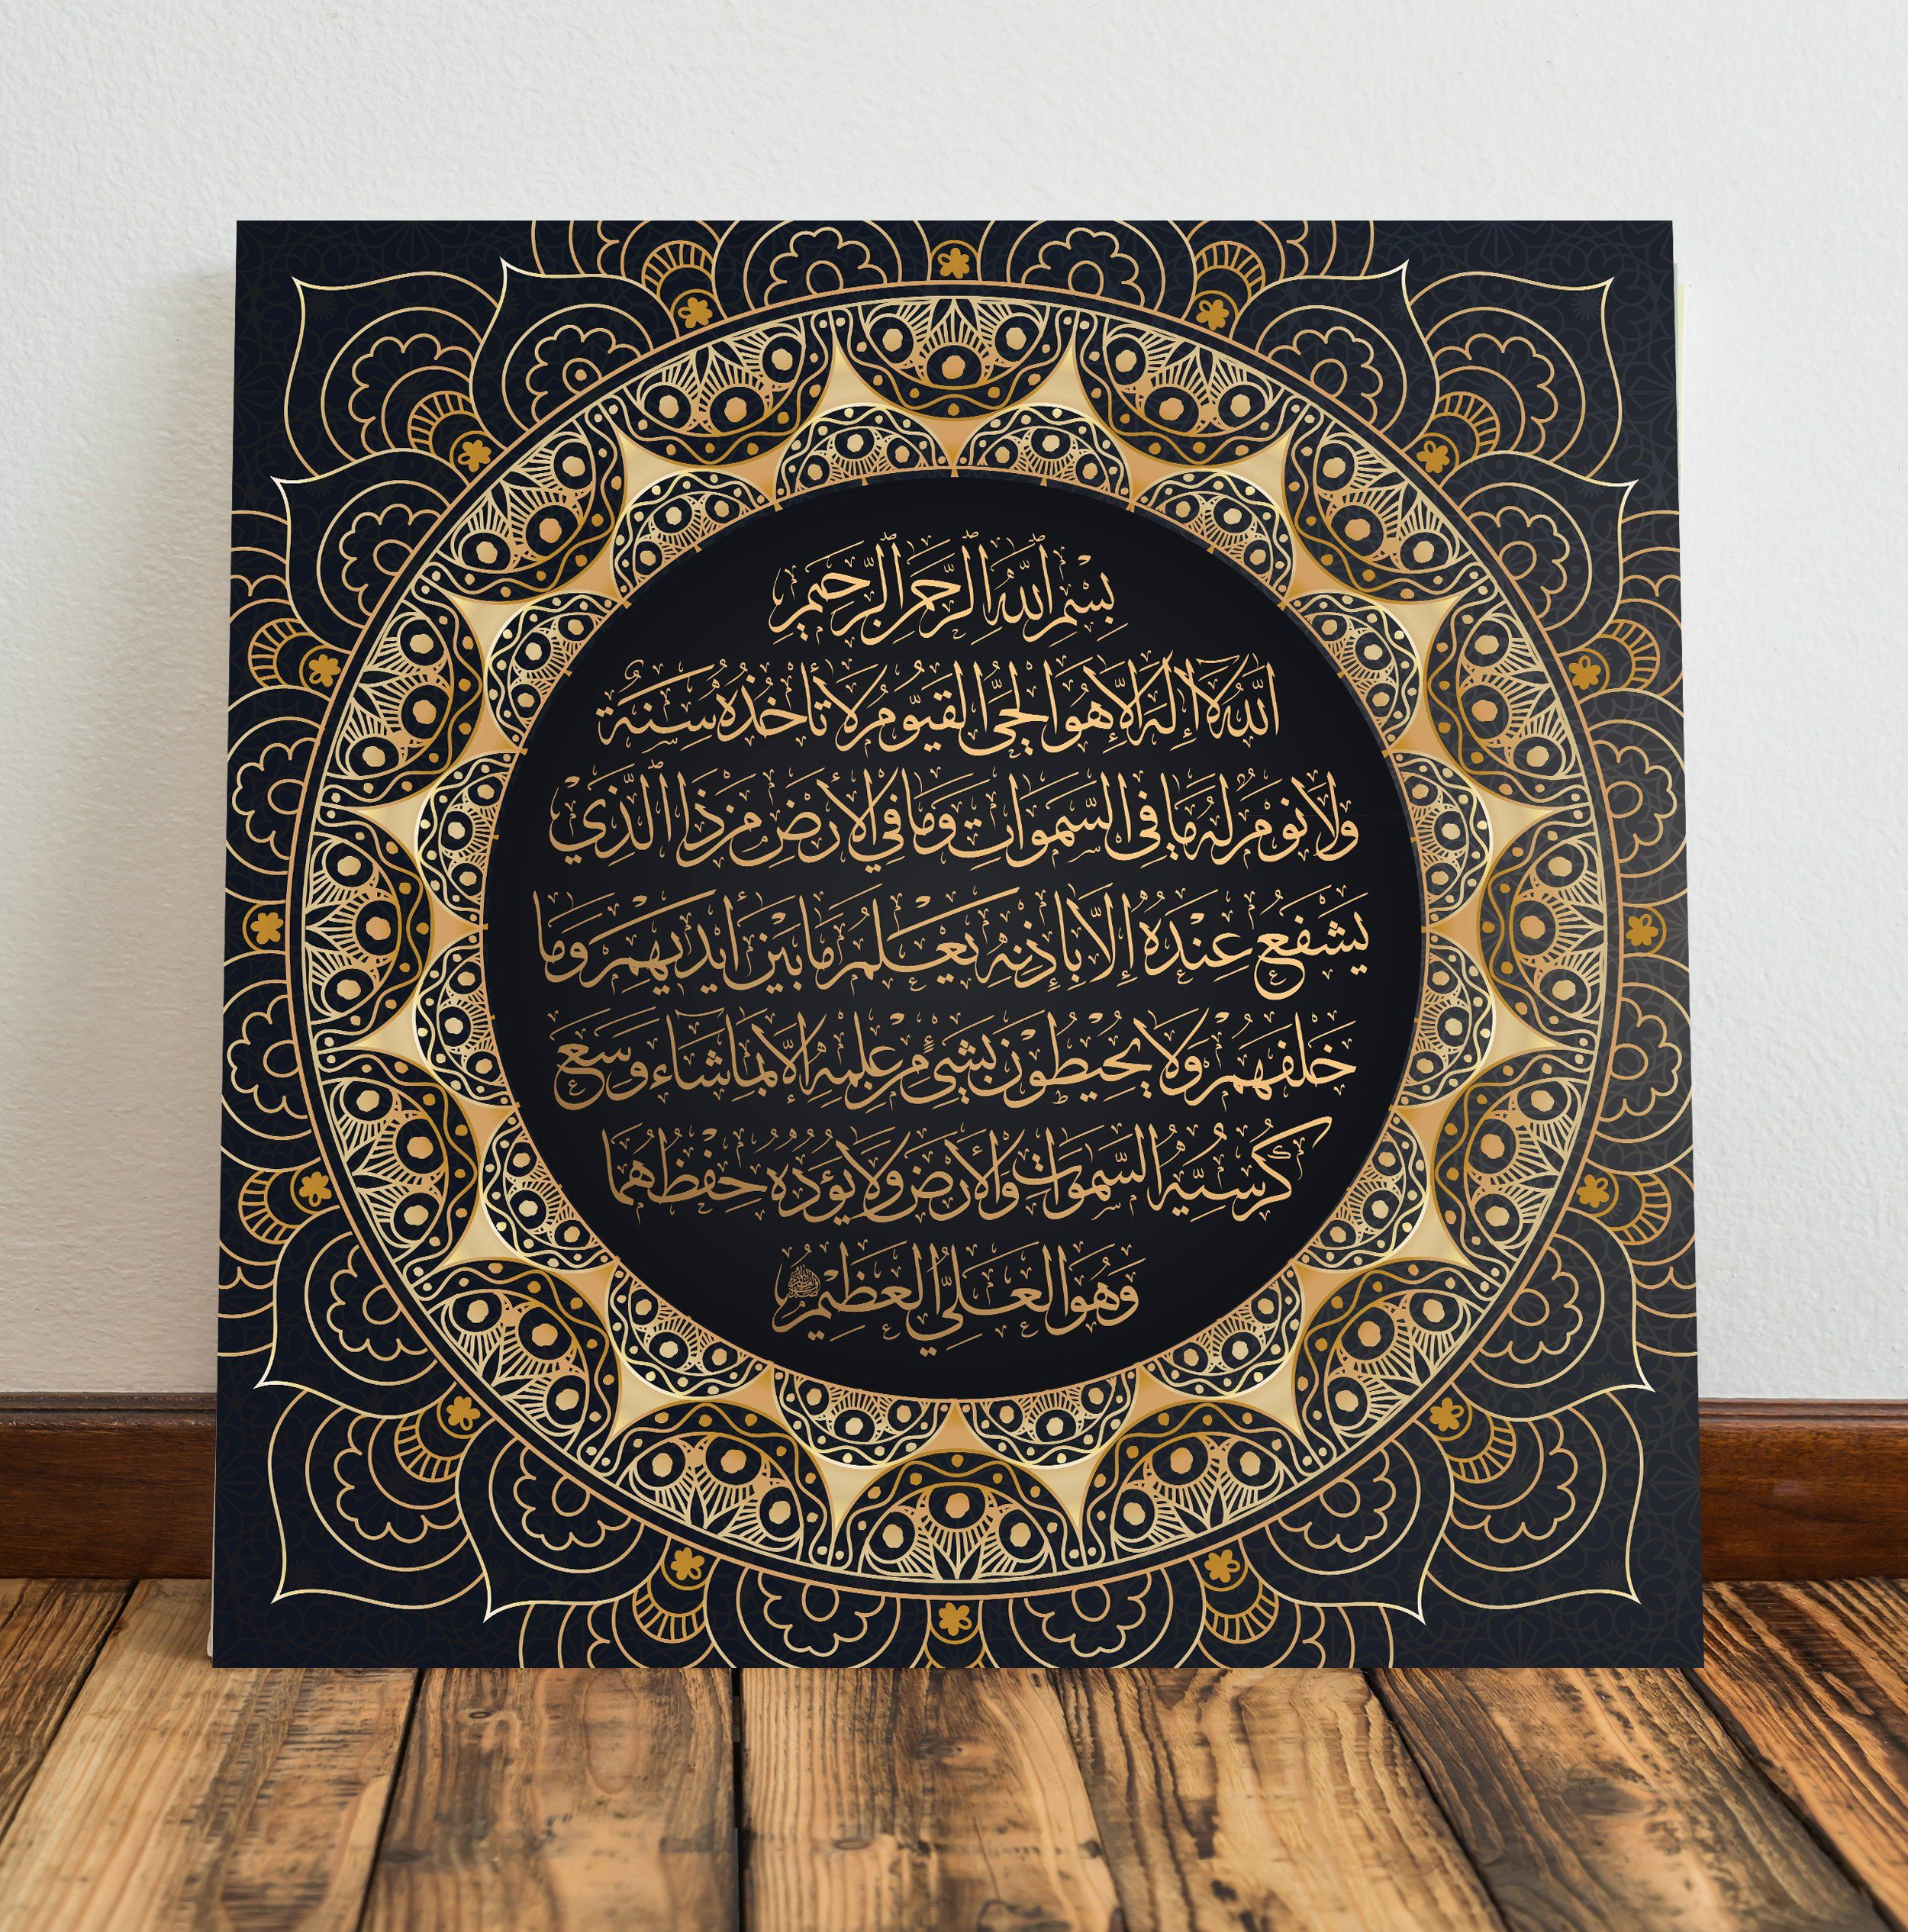 Ayat Kursi Quranic Islamic Wall Art Ayatul Etsy Islamic Wall Art Islamic Art Calligraphy Islamic Art Canvas